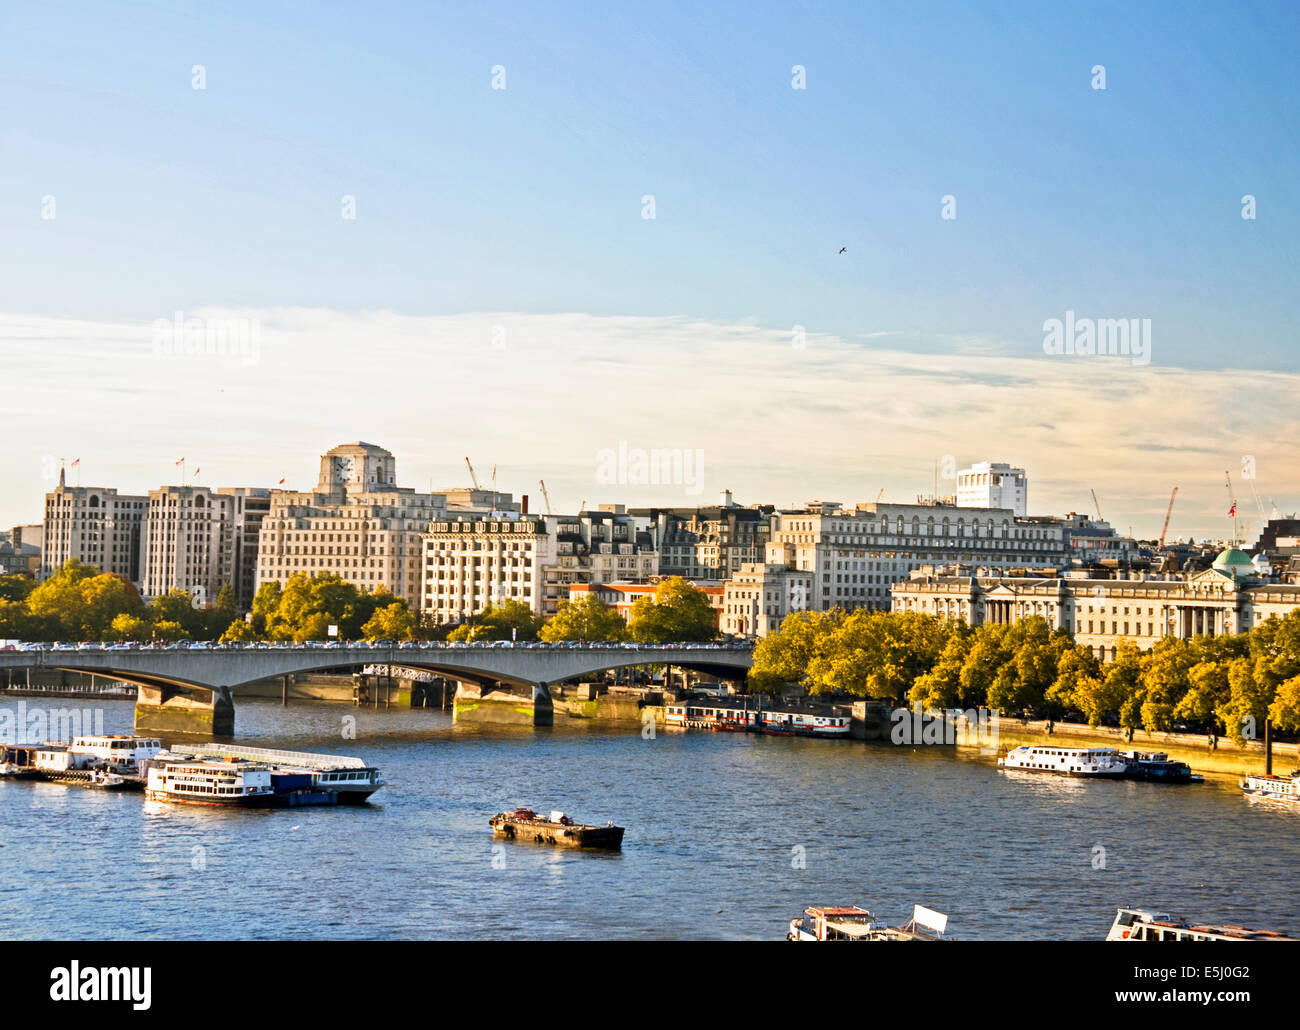 View of the River Thames showing Waterloo Bridge and Shell Mex House, London, England, United Kingdom Stock Photo